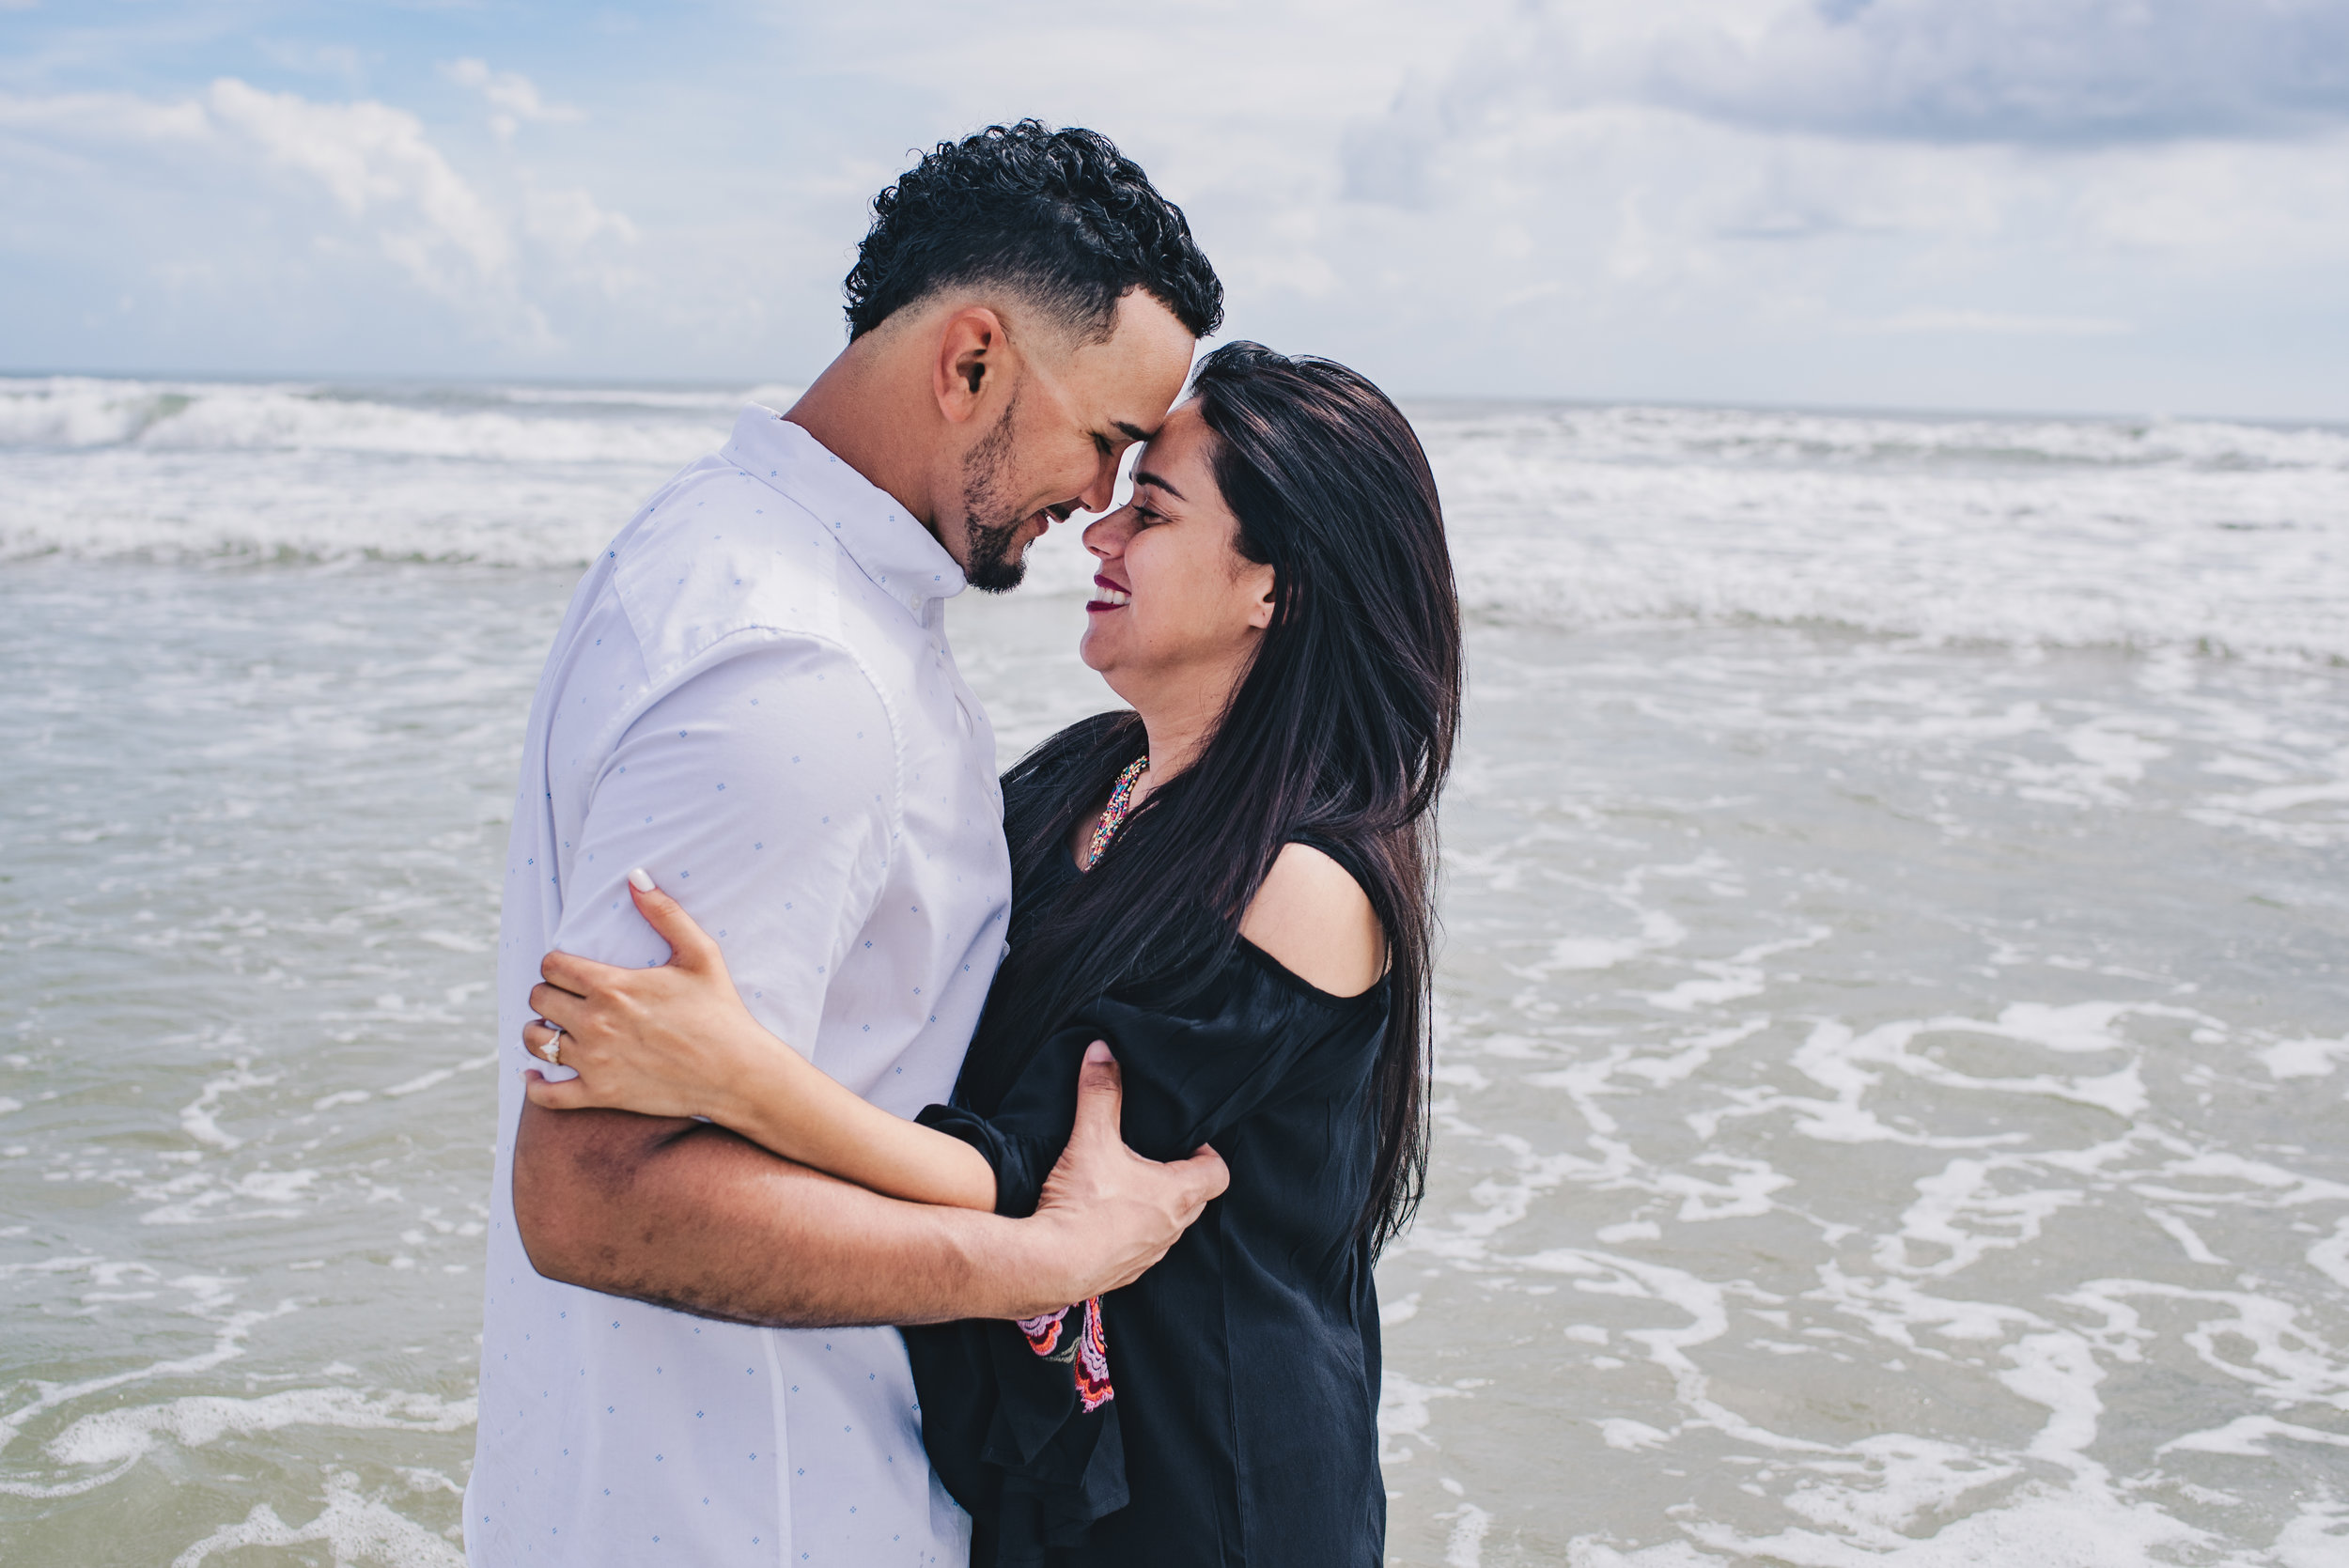 Los-Vargas-Photo-Boardwalk-Summer-Engagement-Session-1410.jpg